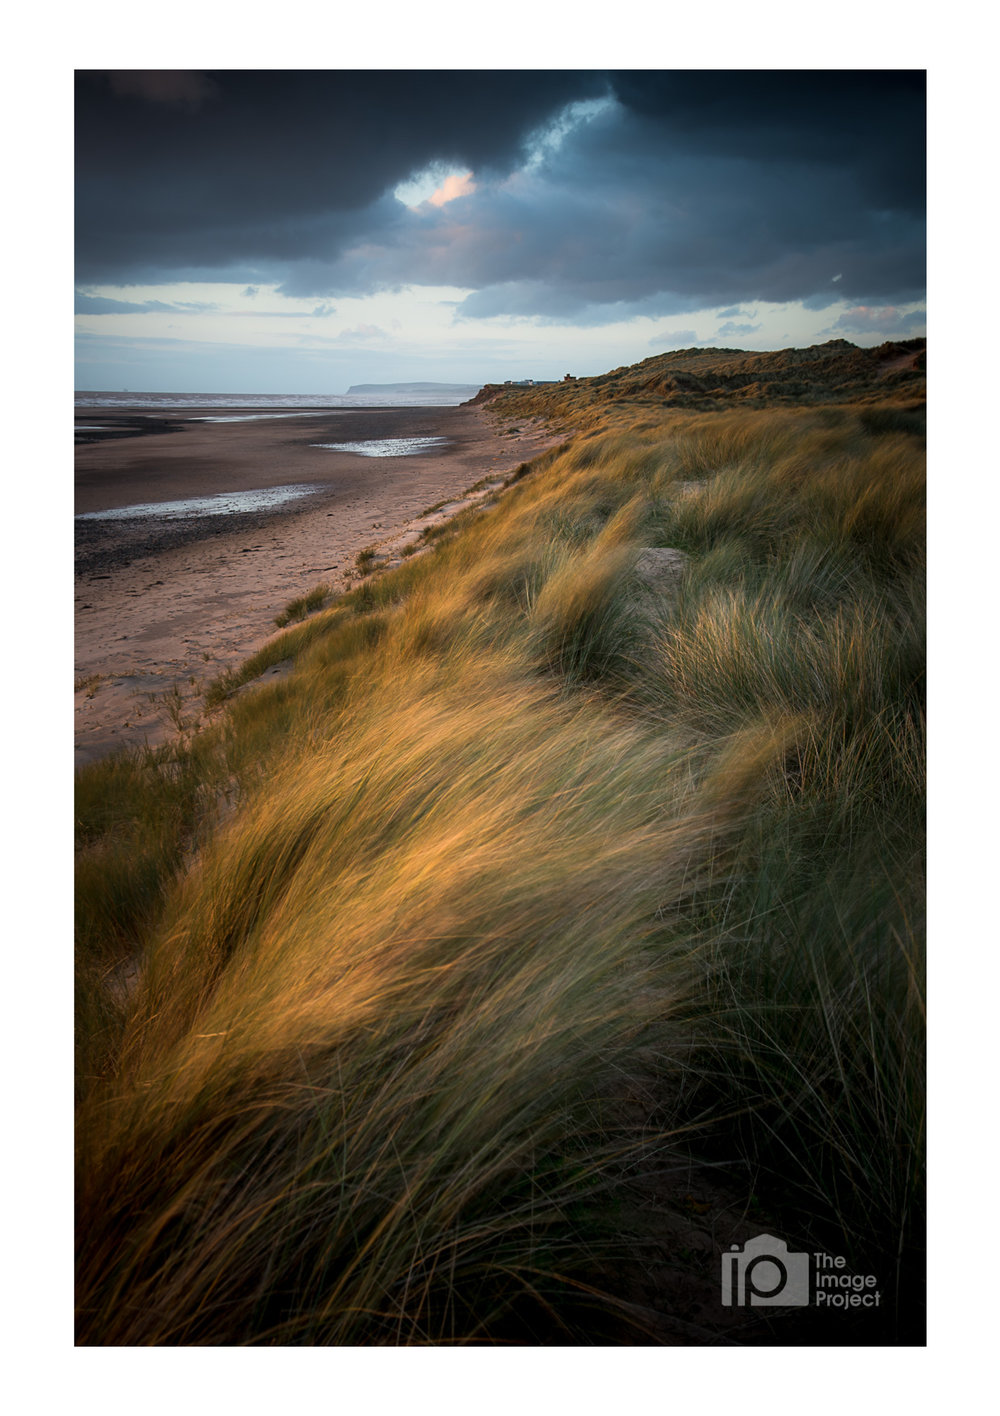 Sand dunes at Drigg, Lake District during evening golden hour